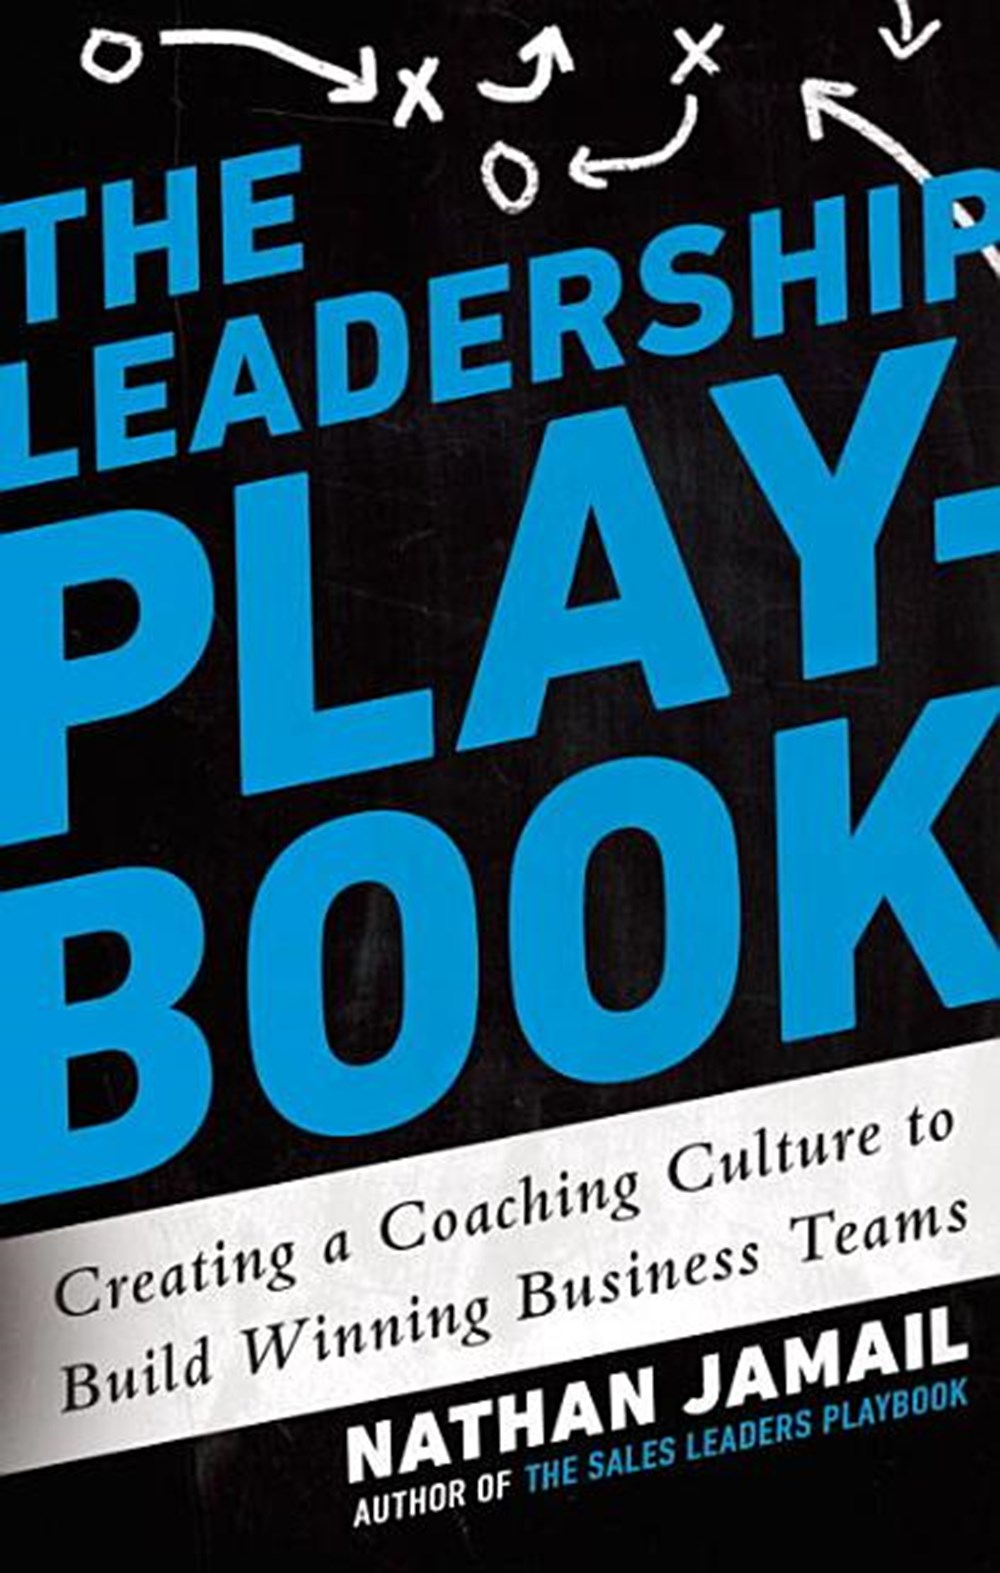 Leadership Playbook Creating a Coaching Culture to Build Winning Business Teams